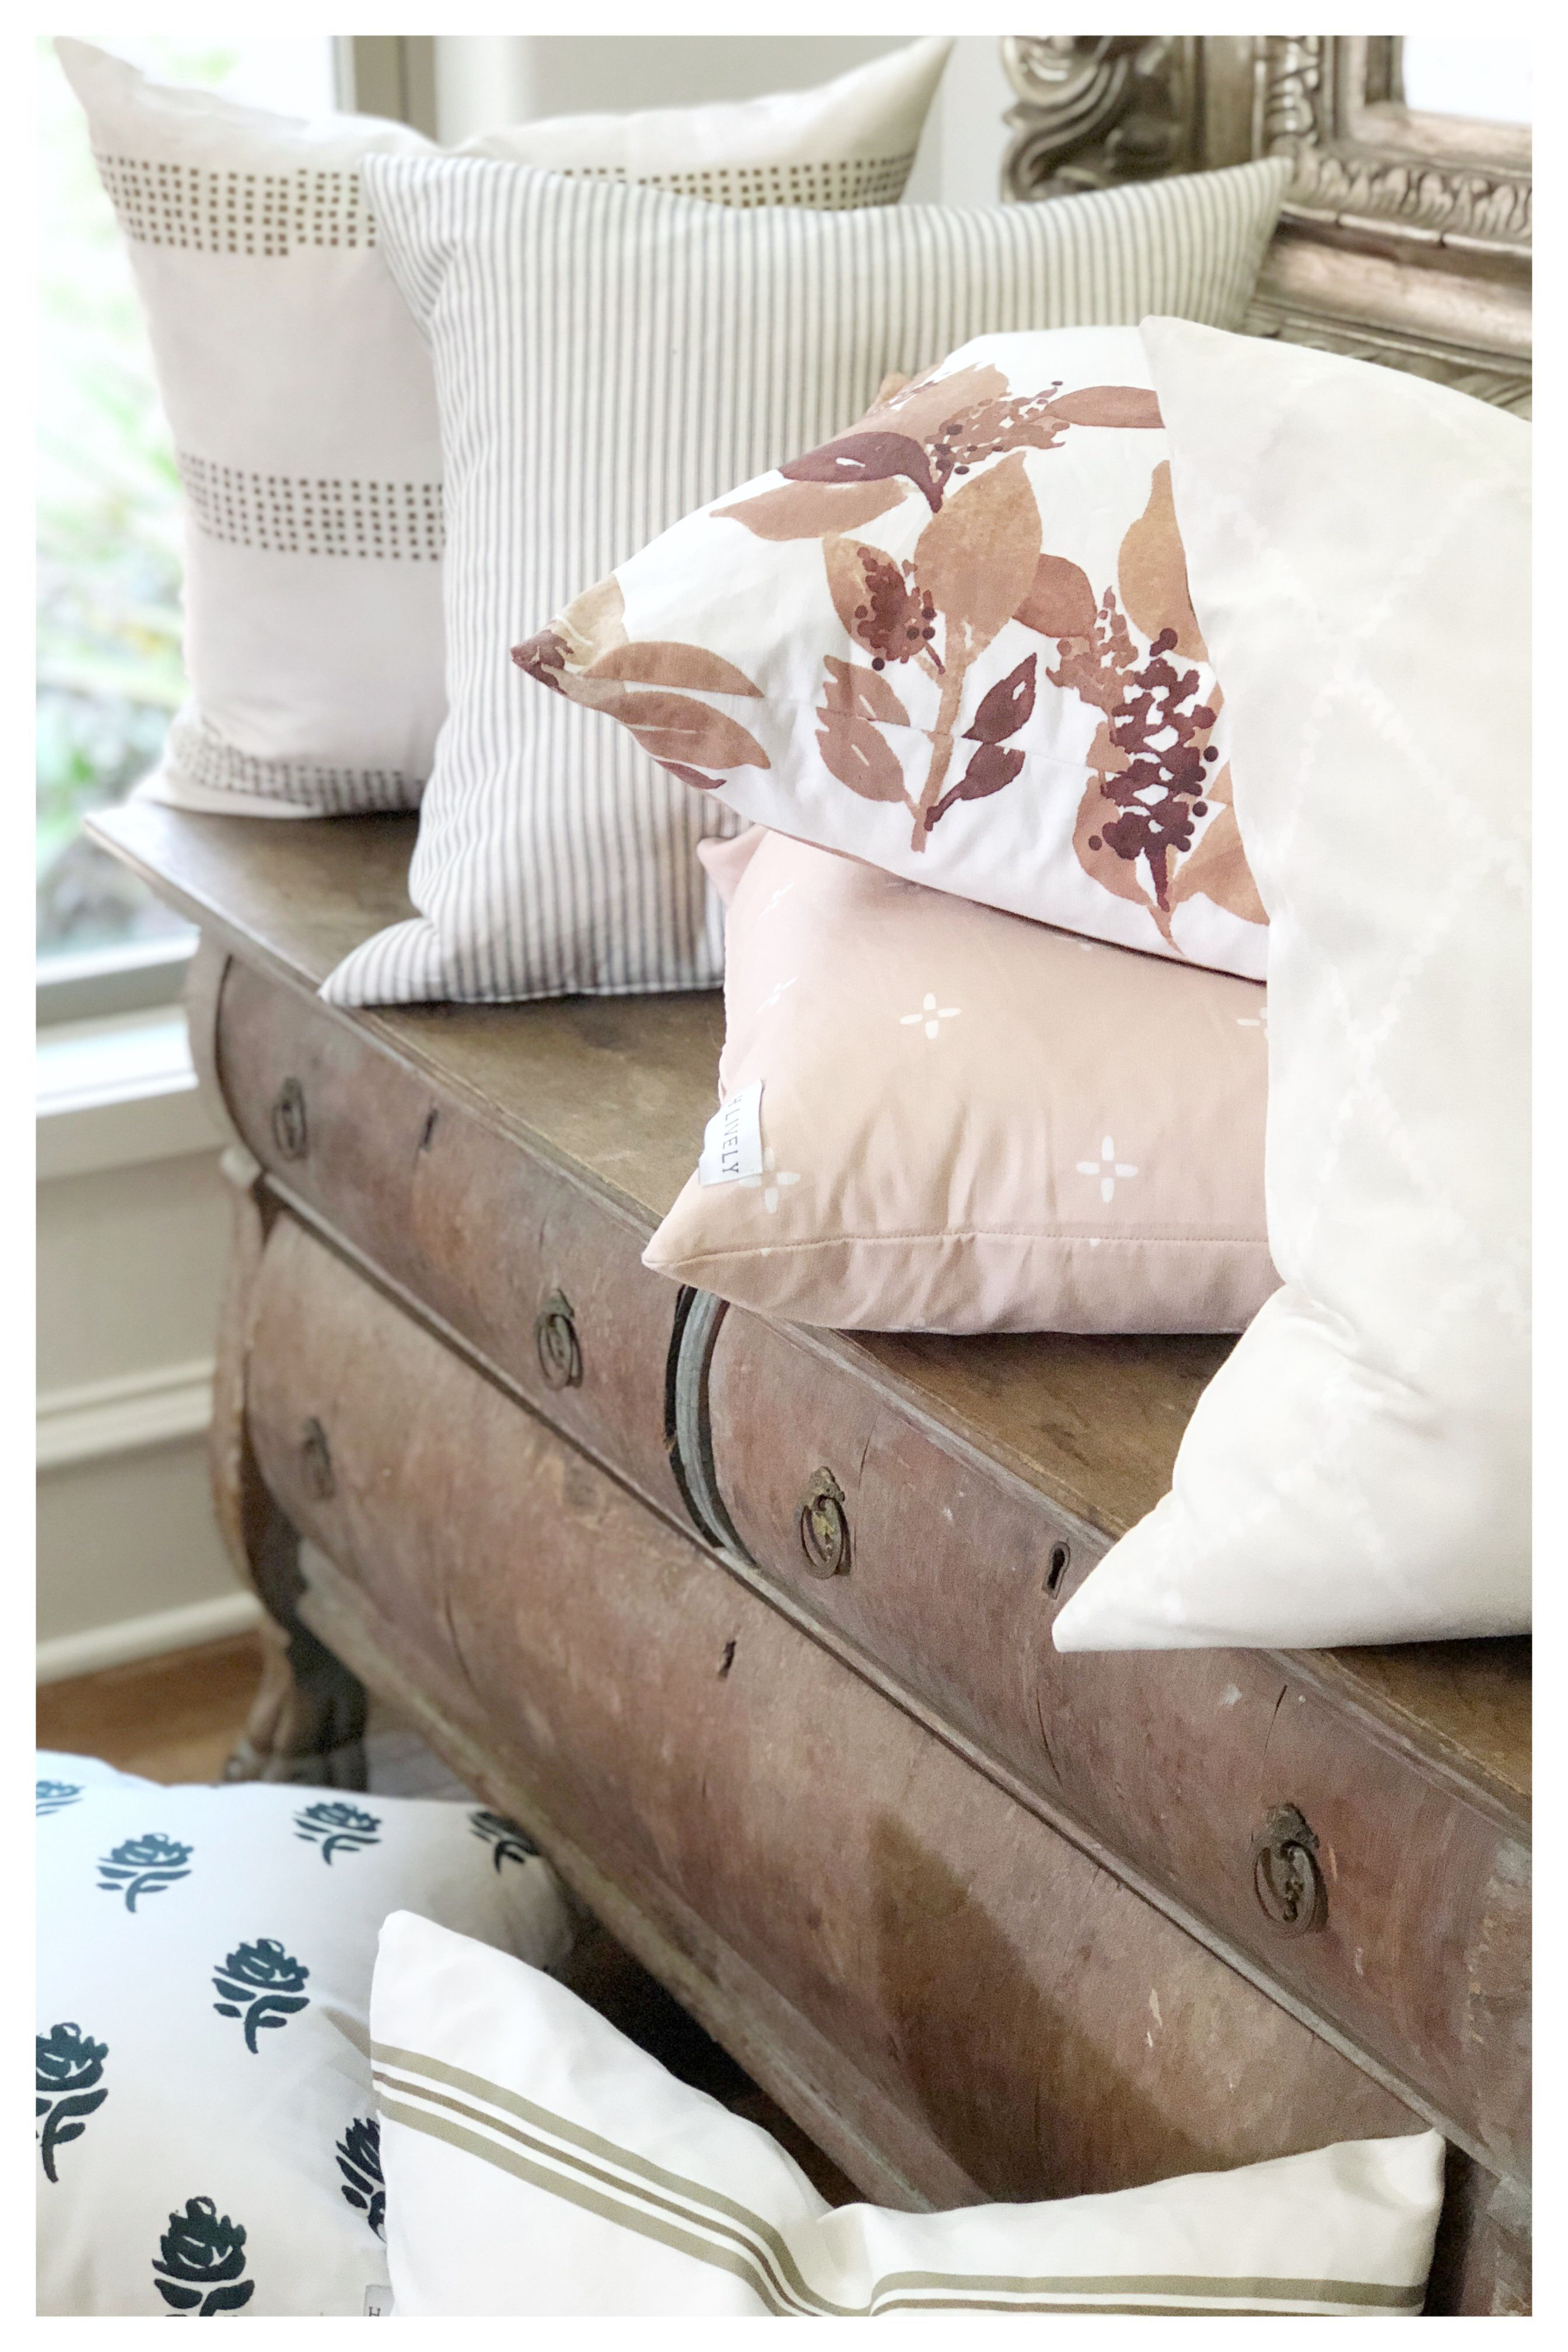 H. Lively features artisan designed, handmade decor pillows for your home. Each design is hand drawn and custom made for you. Original, livable art for your sacred place, your home. Click through to see the entire collection. #hlivelytextiles #homedecor #housetohome #decorpillows